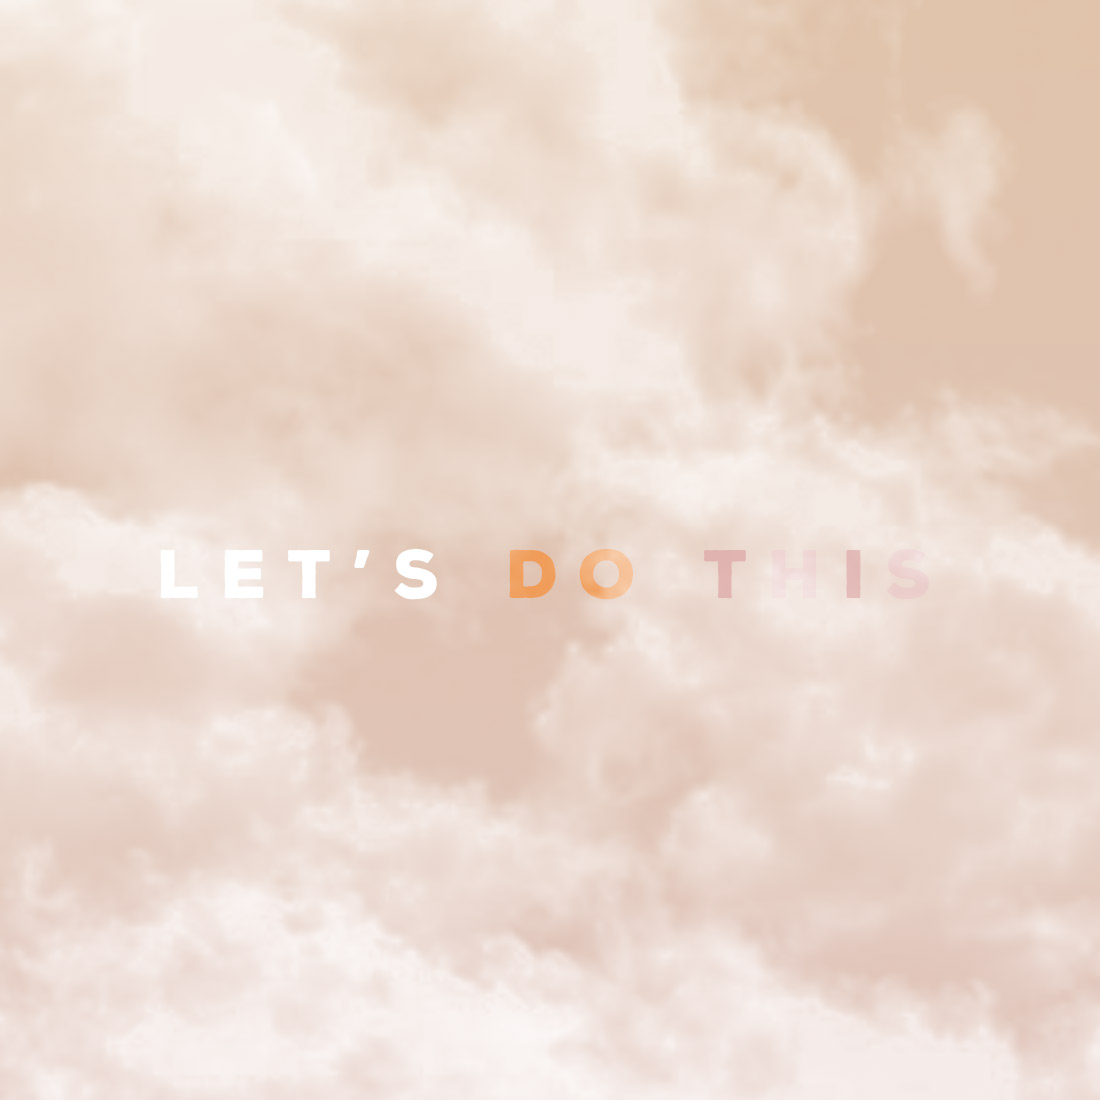 wallpaper-lets-do-this-ipad